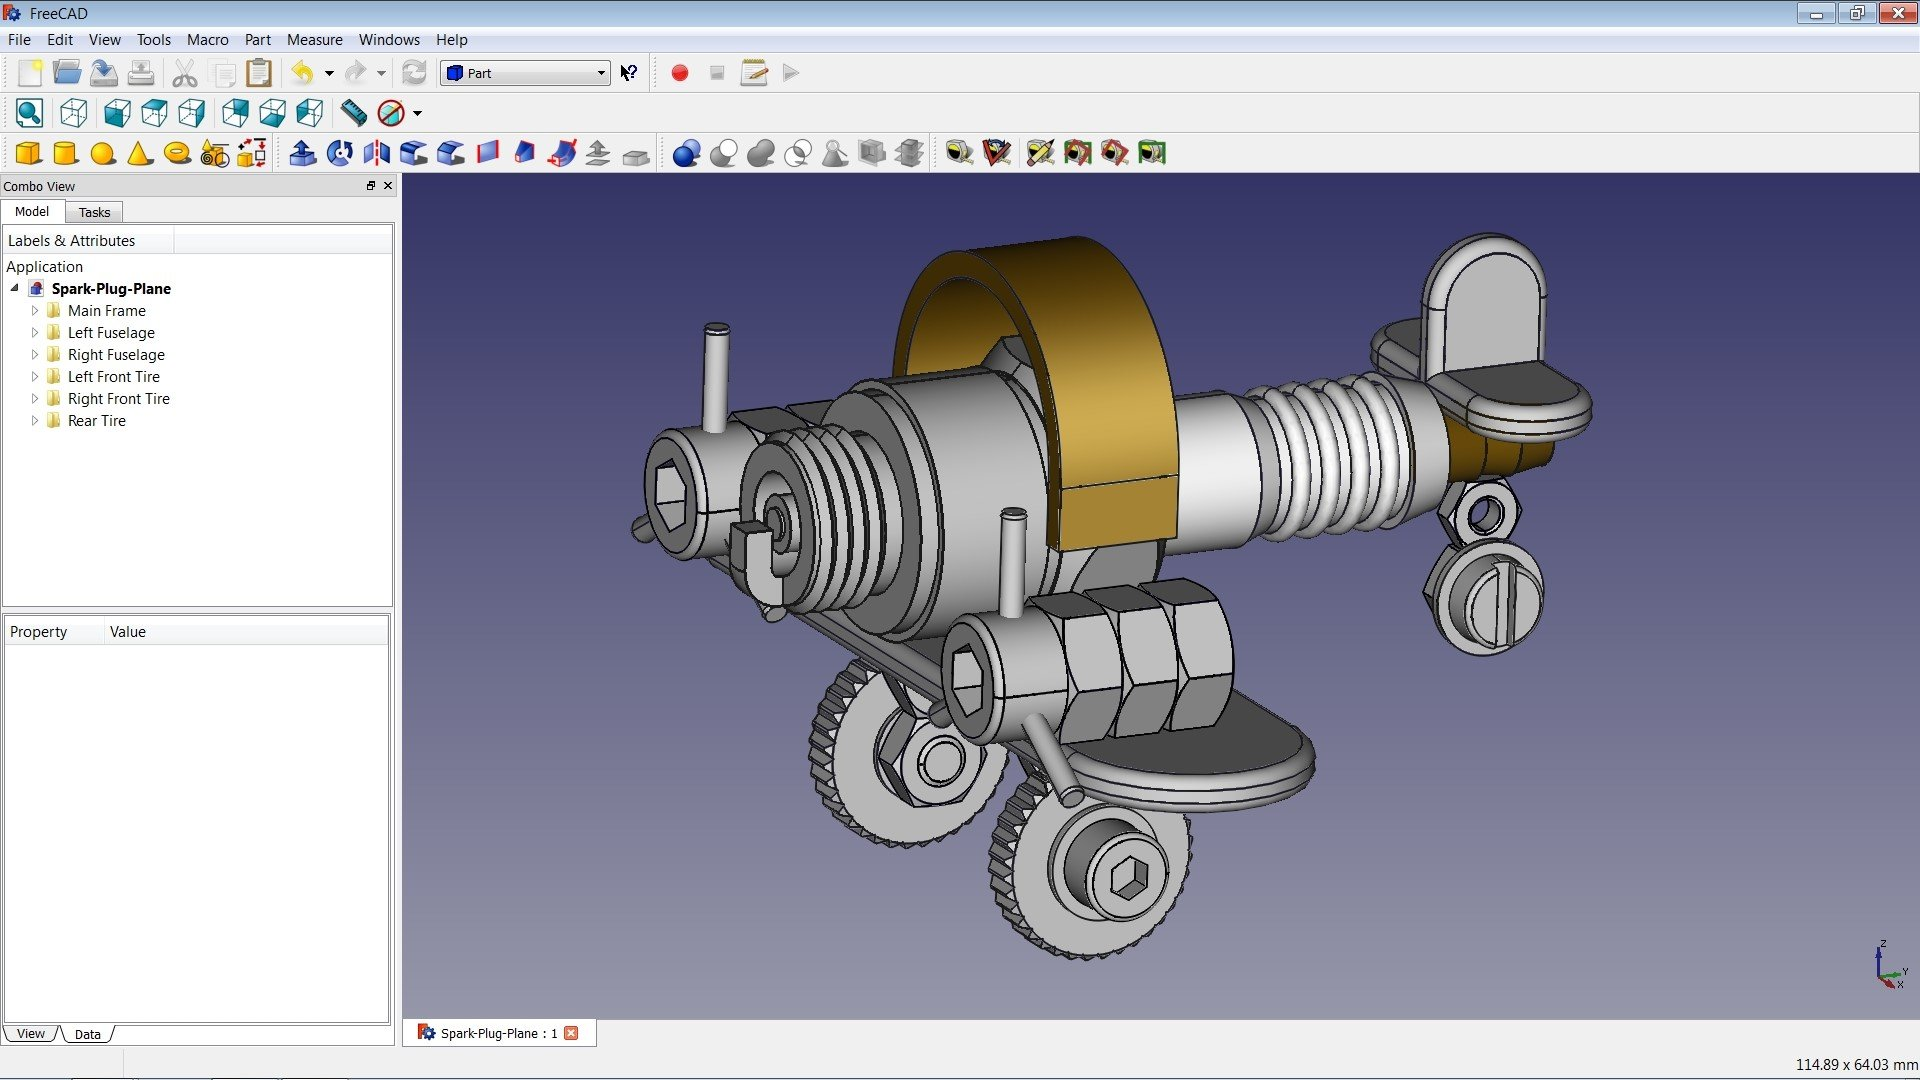 Autodesk Home Designer Freecad Alternatives And Similar Software Alternativeto Net